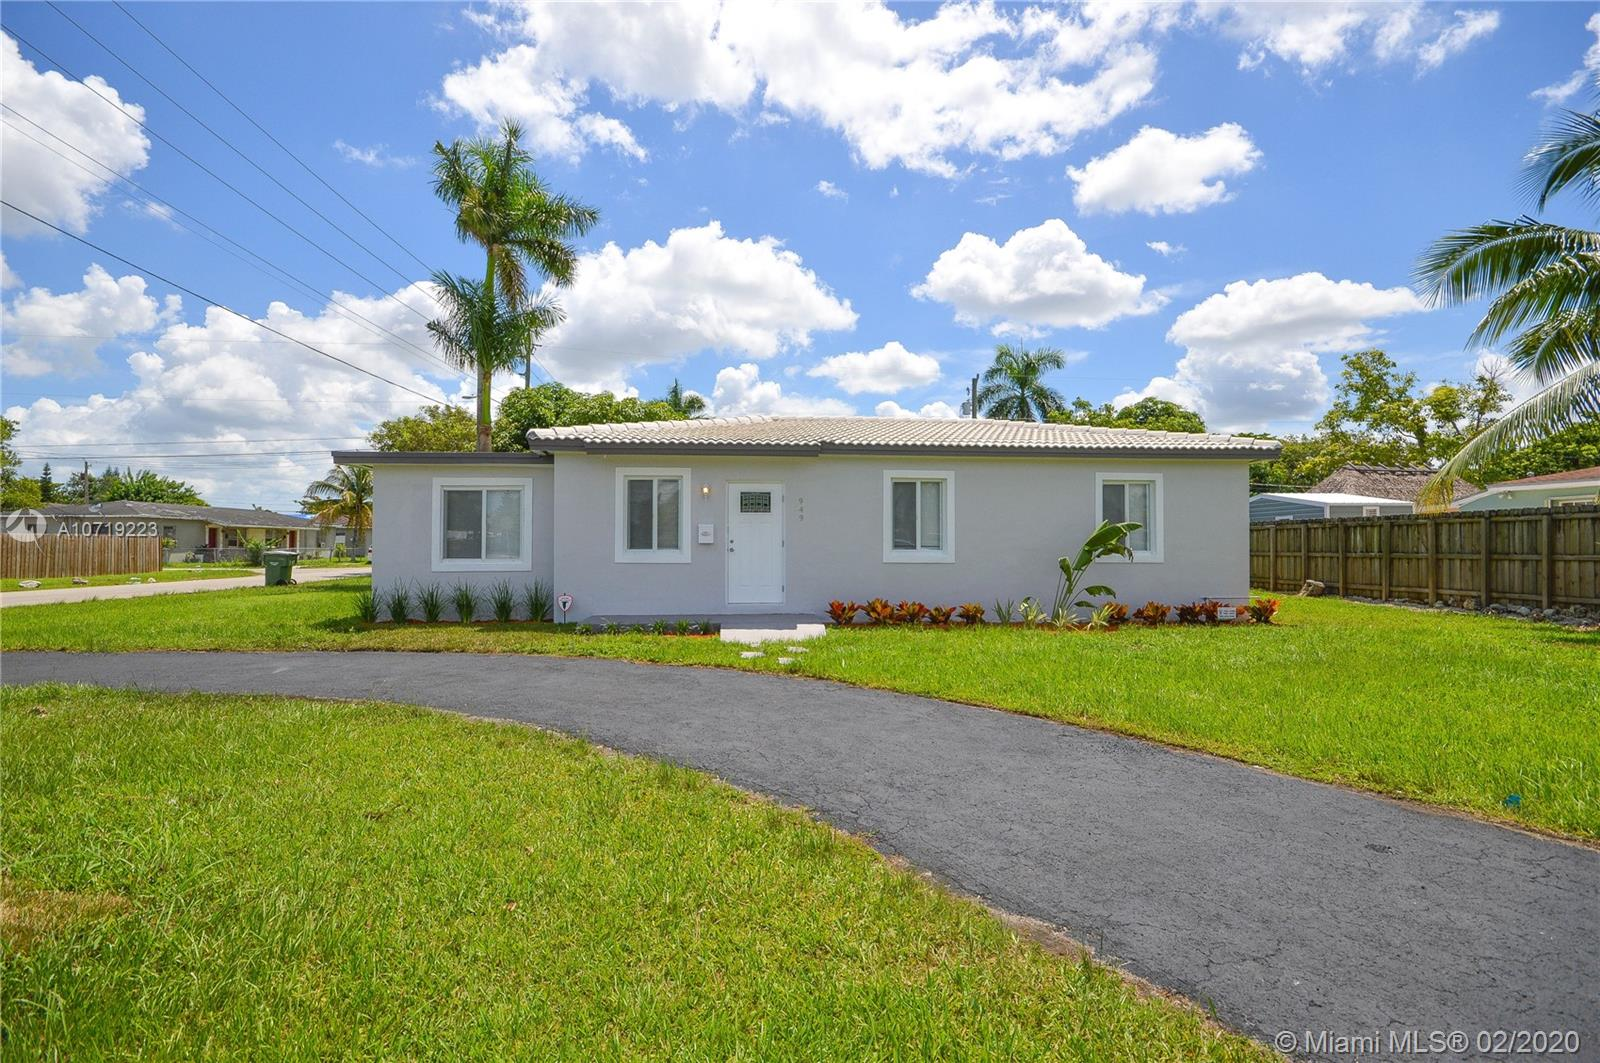 949 NE 4th Ave, Homestead, FL 33030 - Homestead, FL real estate listing